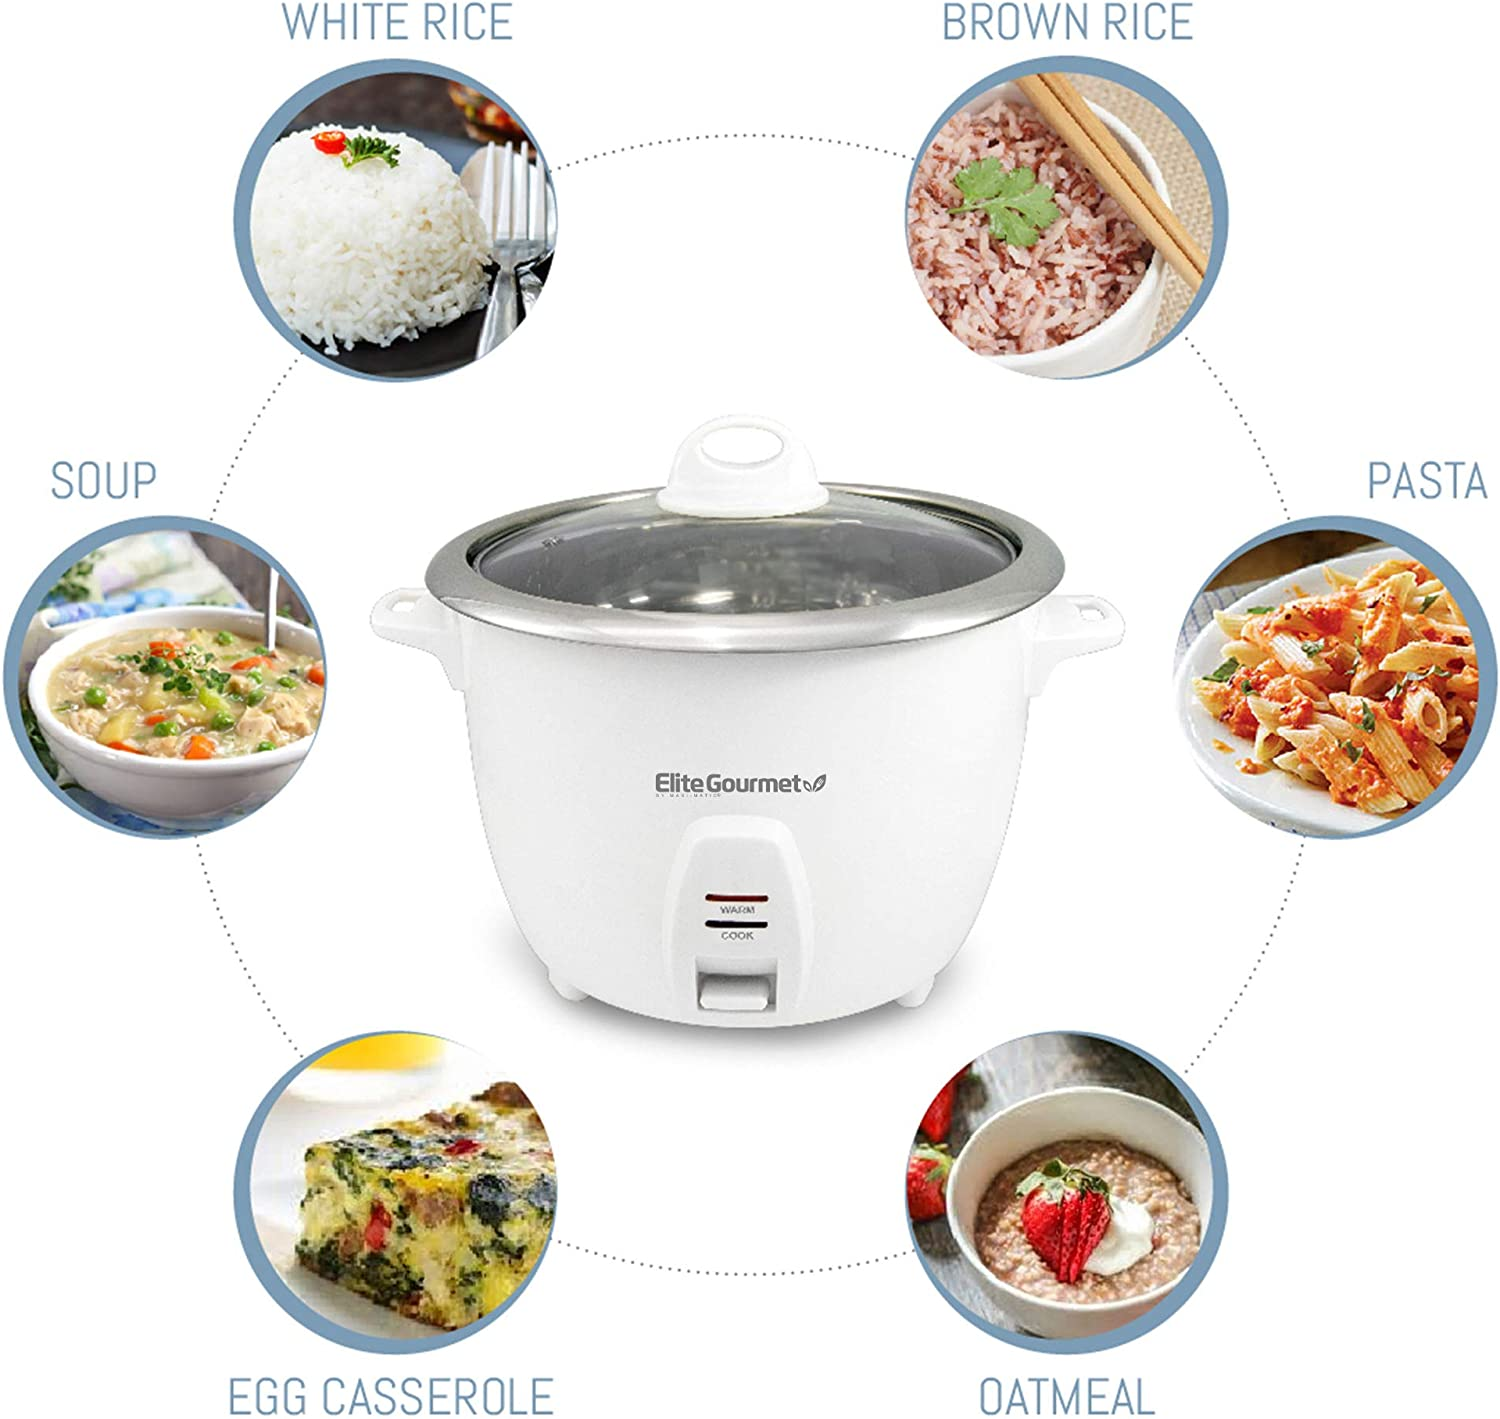 What you can cook on Elite Gourmet electric rice cooker?